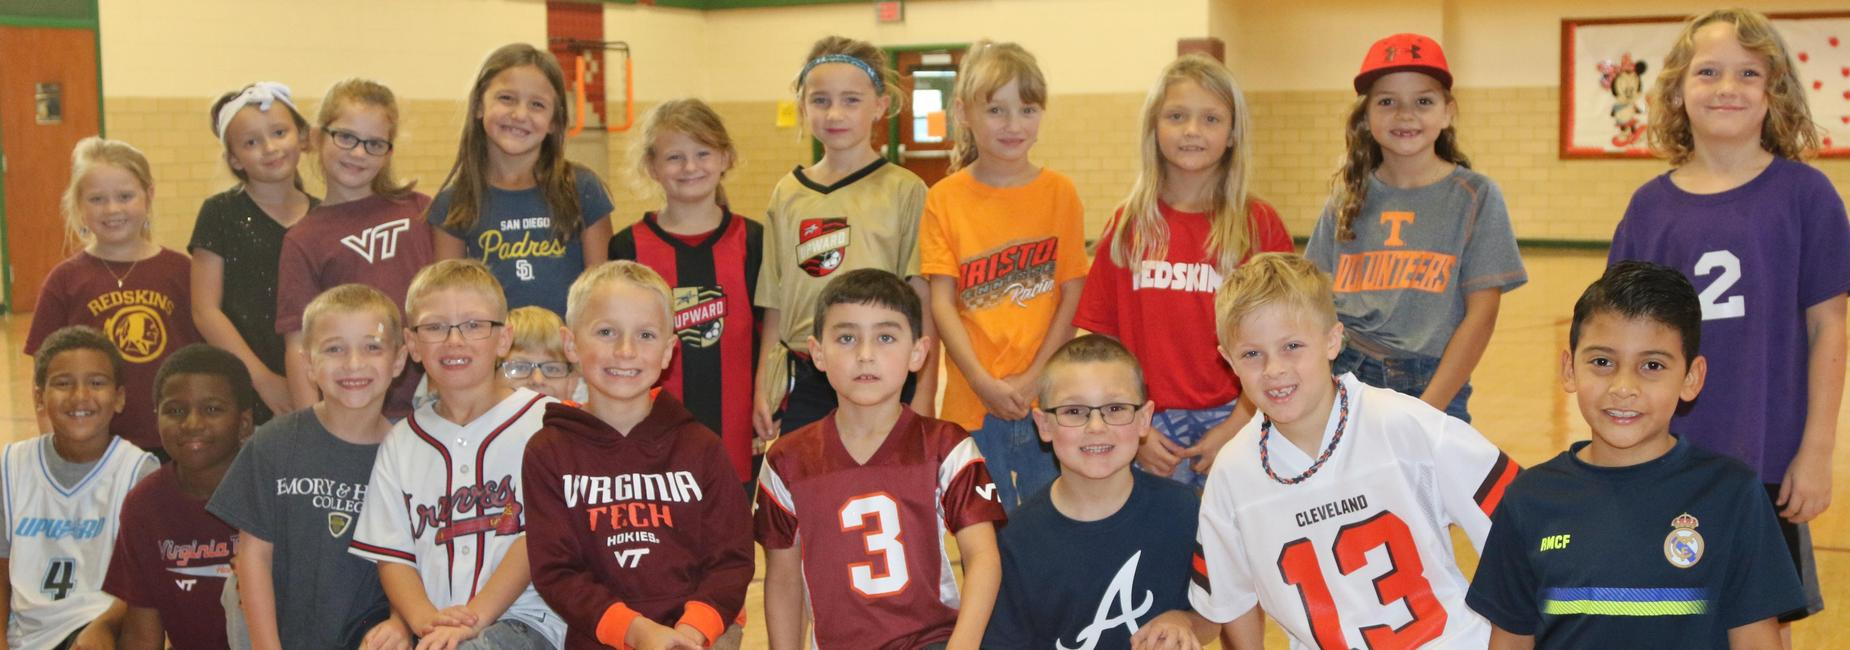 Students shown wearing their Favorite Sports Team attire